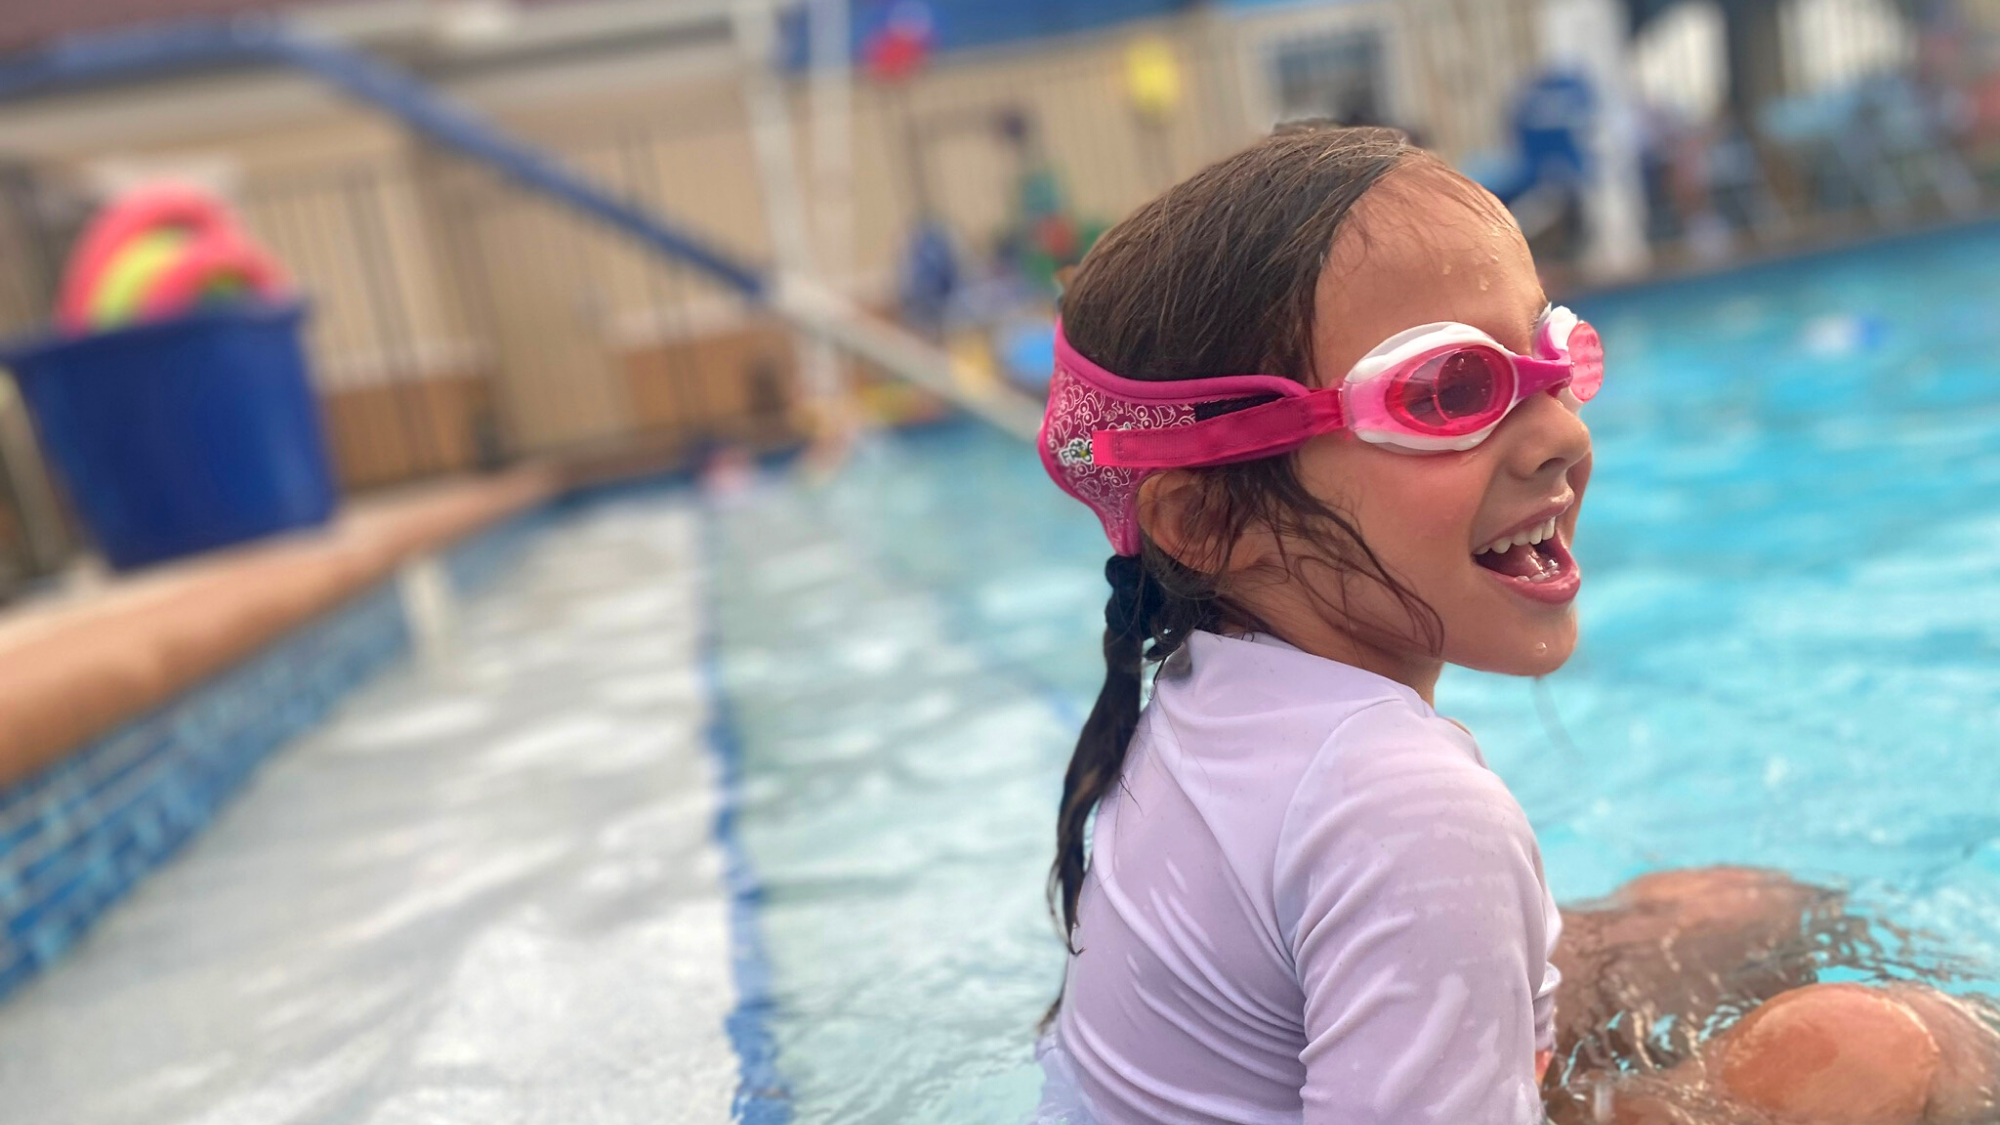 Young girl swimming at swim lessons wearing pink Frogglez swim goggles. Laughing, happy girl wearing swimming goggles in the pool. Pink neoprene strap with velcro adjusts easily.